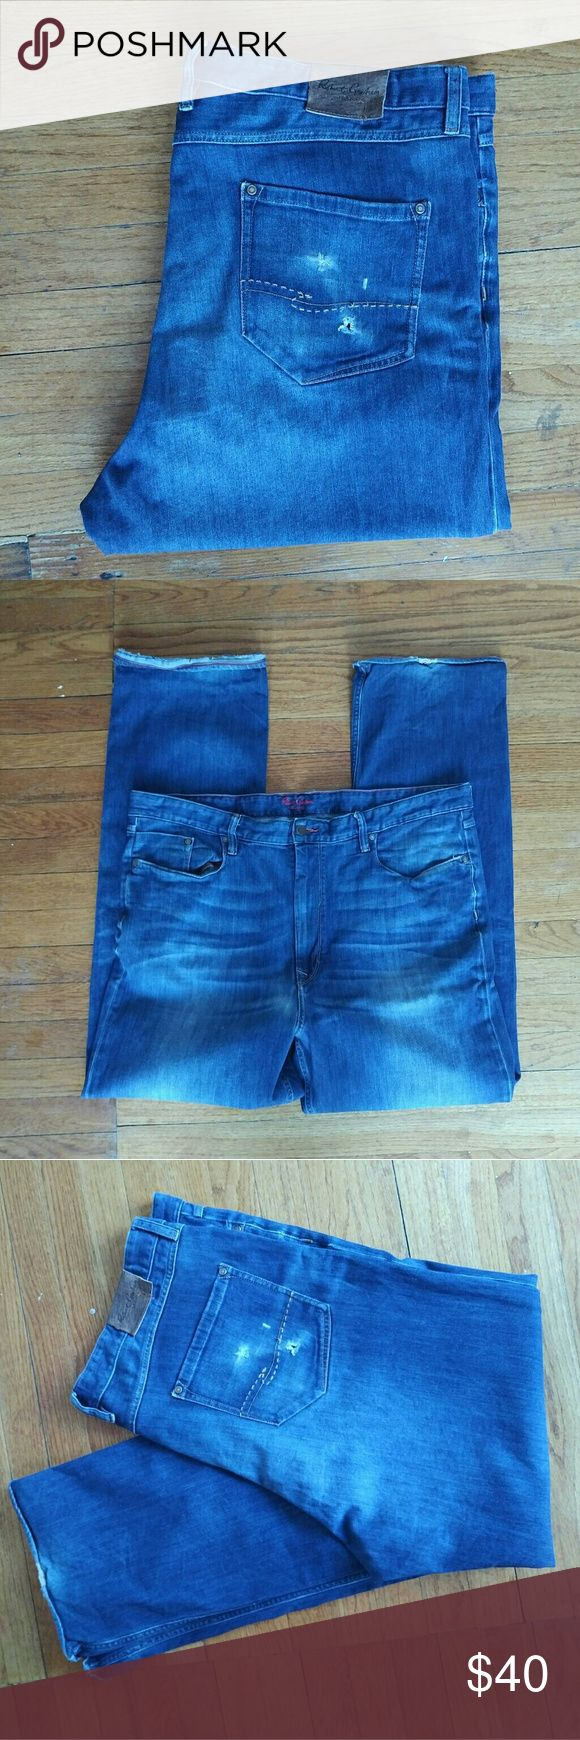 Robert Graham Mens Blue Jeans 44 Robert Graham Preowned Blue jeans mens size 44 Yates shows some wear shown in photos jeans has lots of life left Robert Graham Jeans